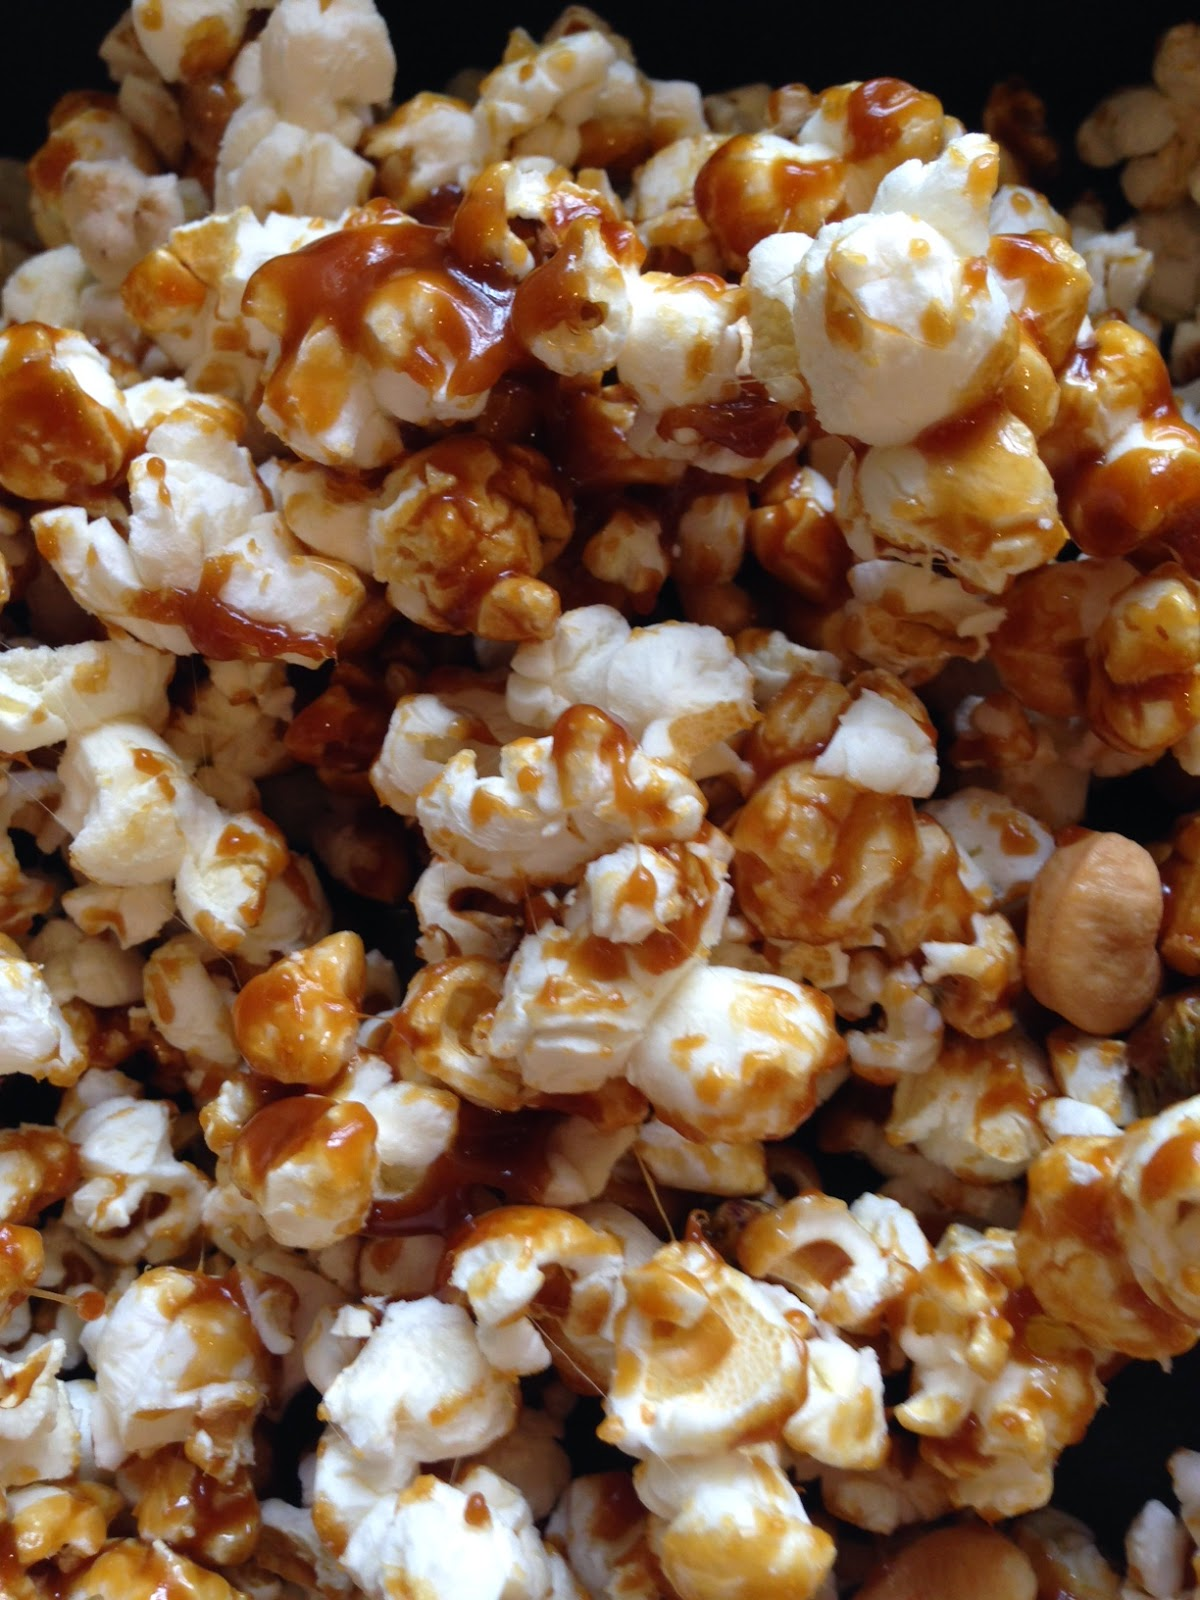 moose munch, caramel popcorn, christmas snacks for the lake, Lake house recipes